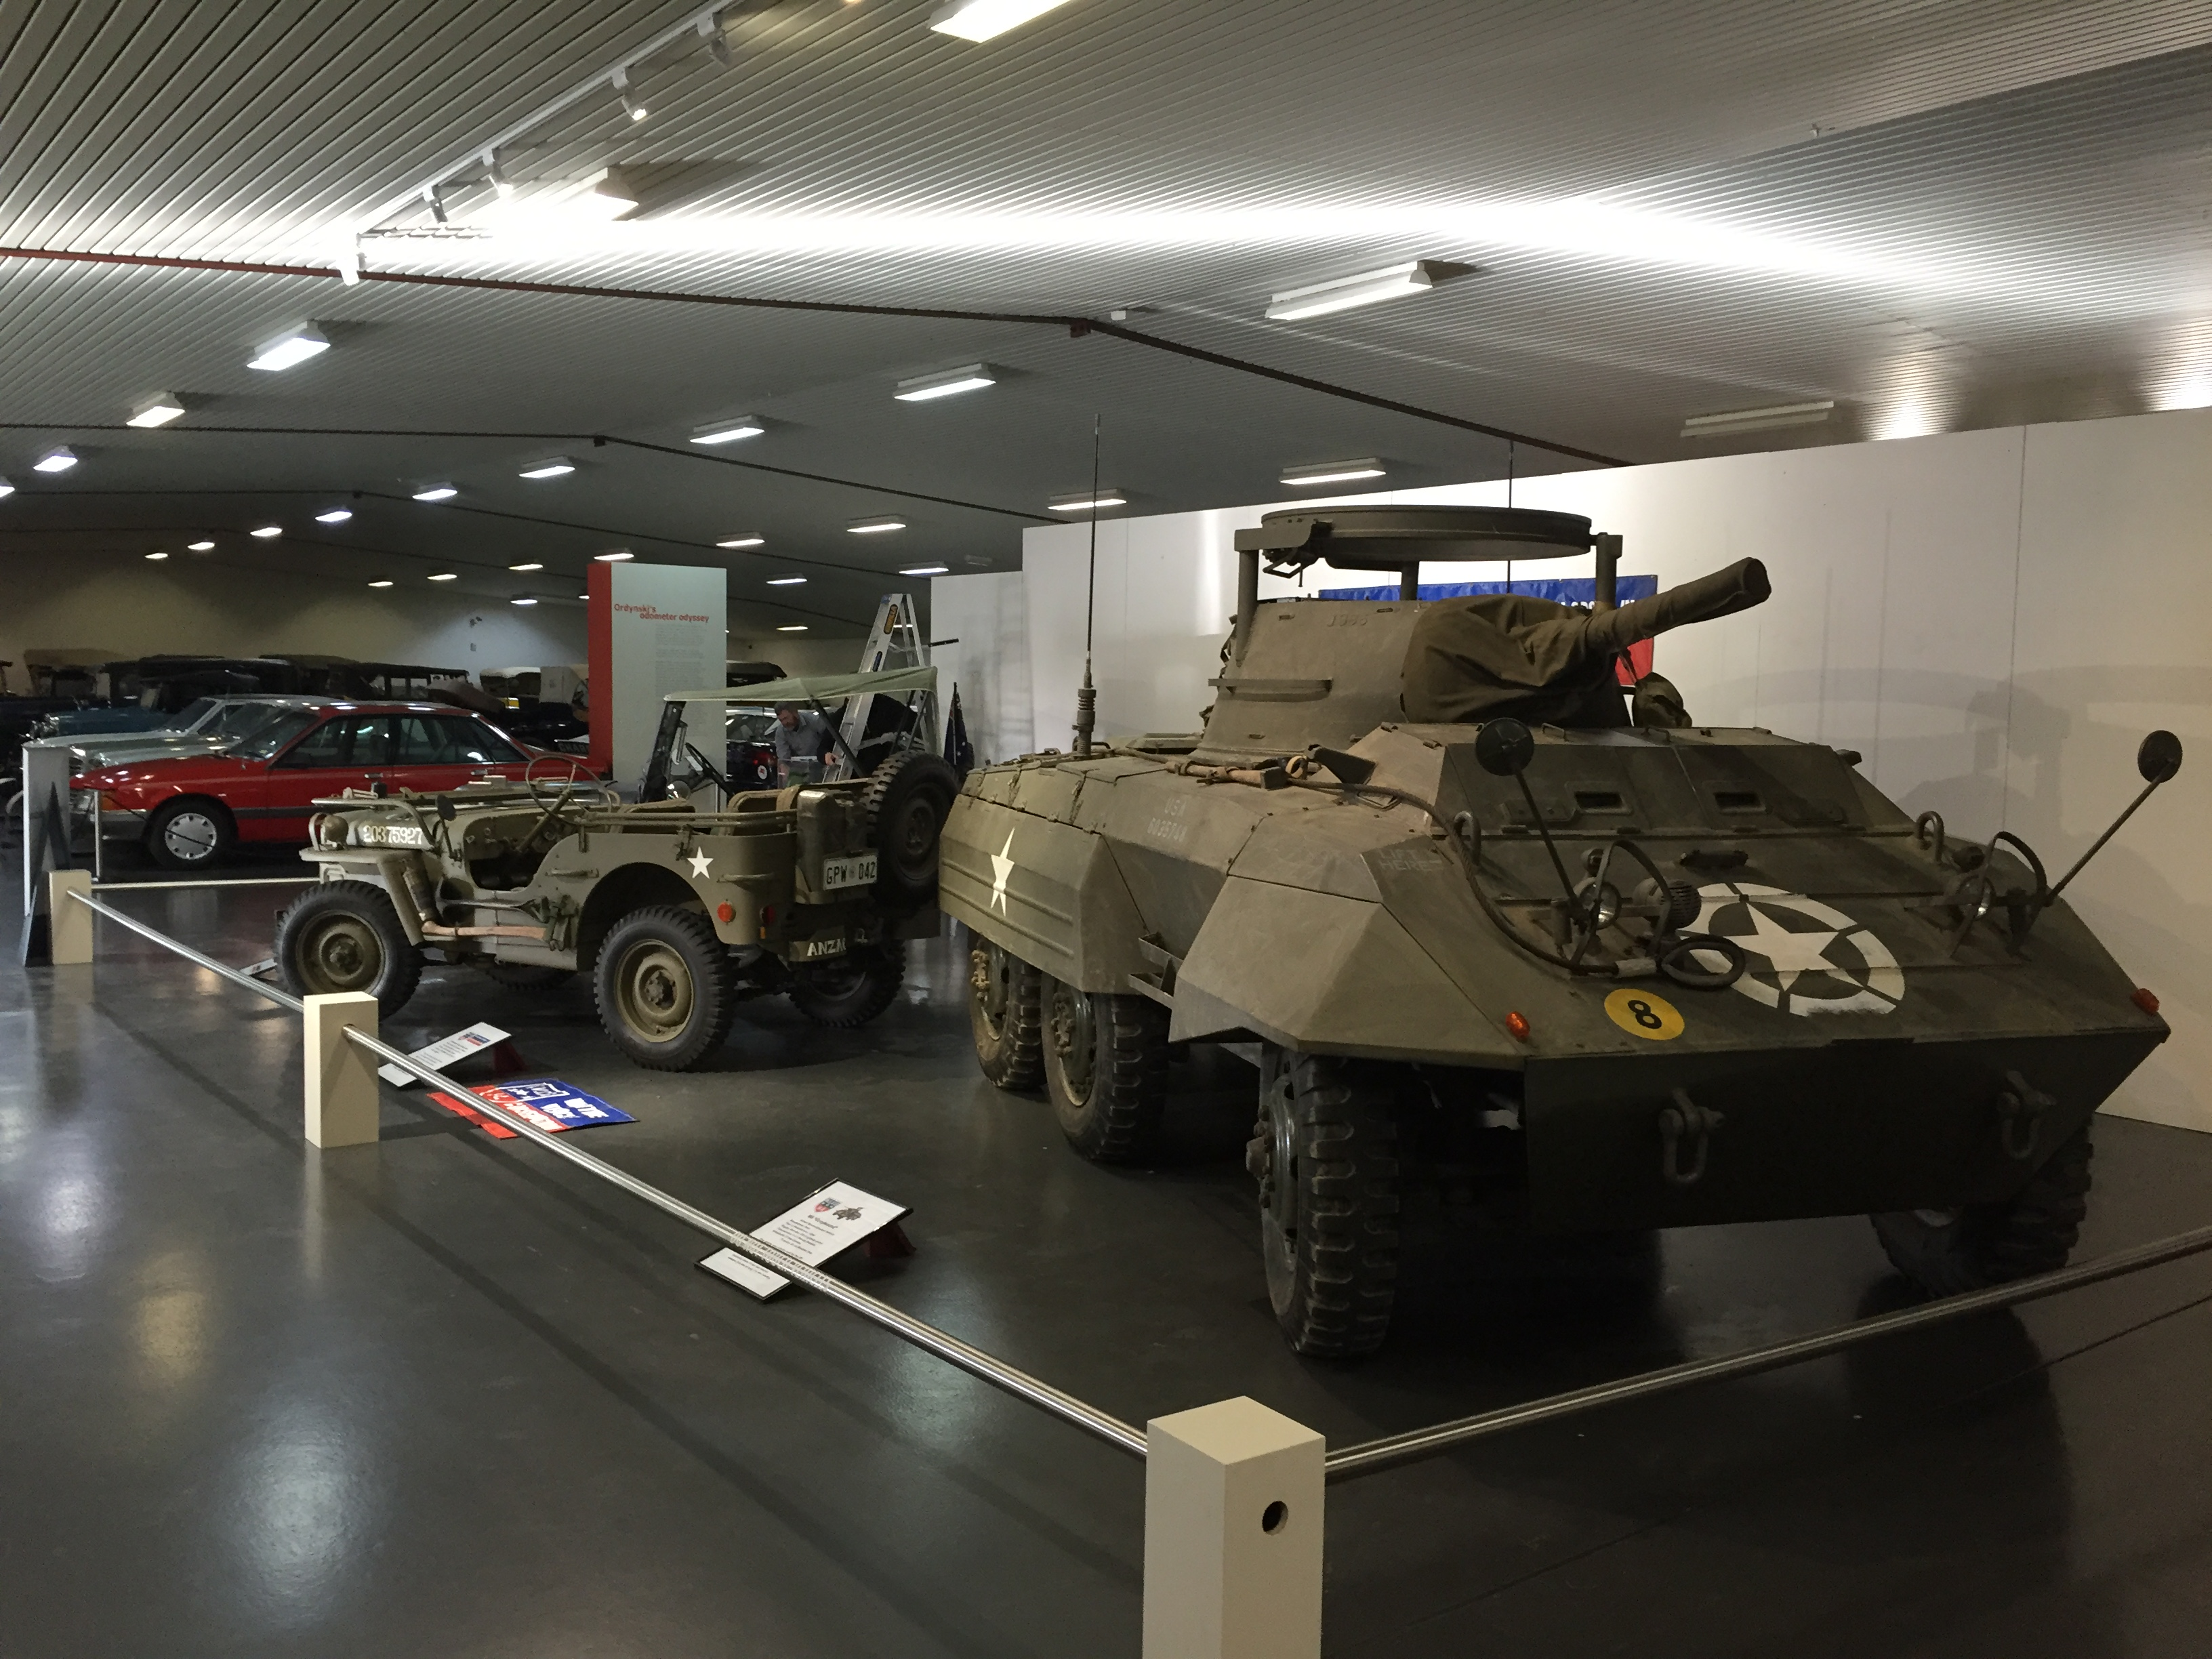 Wvcg Vehicles At The National Motor Museum Wartime